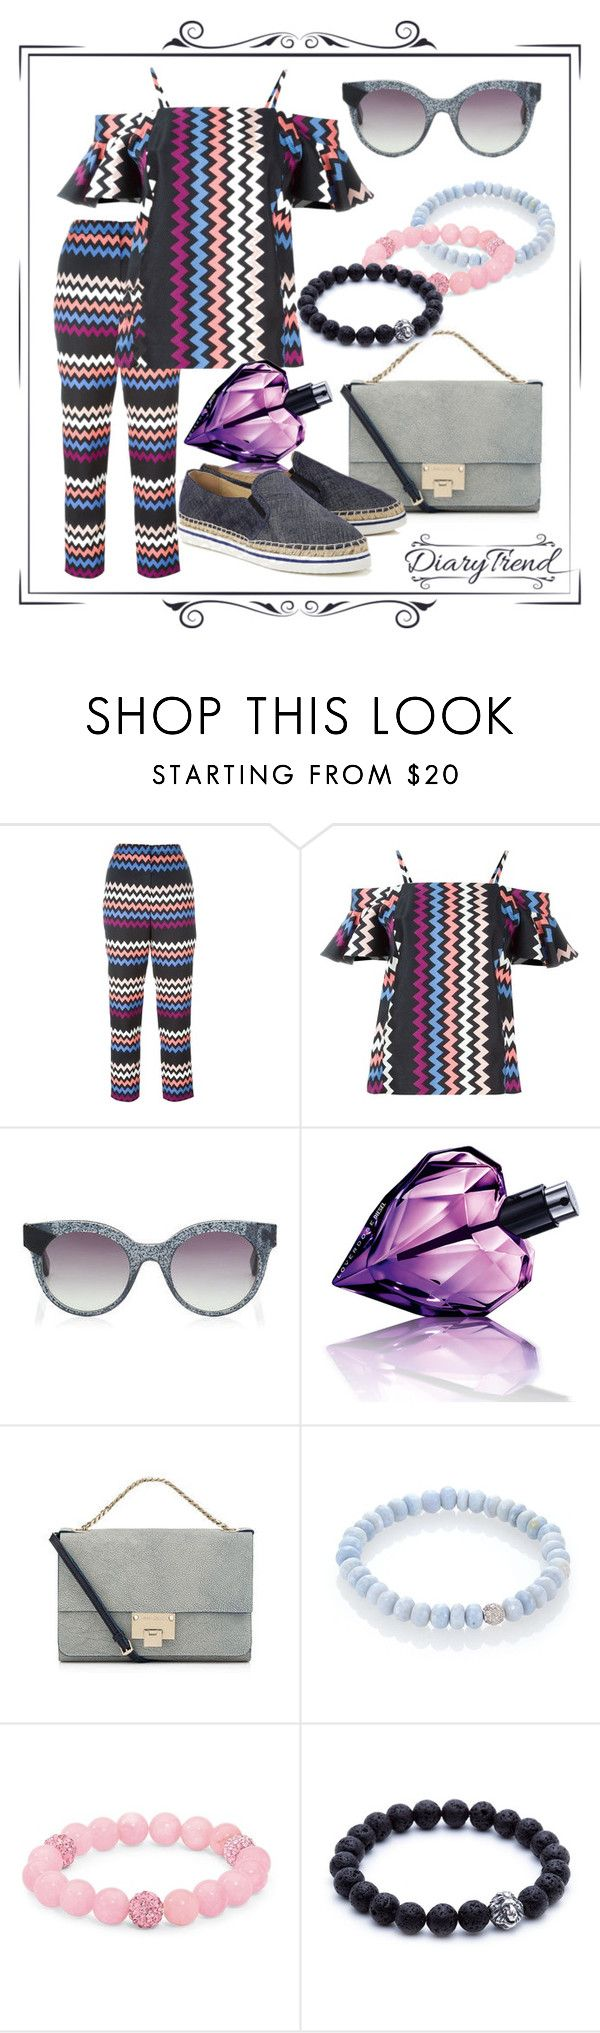 """С плеч долой"" by dairy-trend ❤ liked on Polyvore featuring MSGM, Diesel, Jimmy Choo, Sydney Evan and Palm Beach Jewelry"